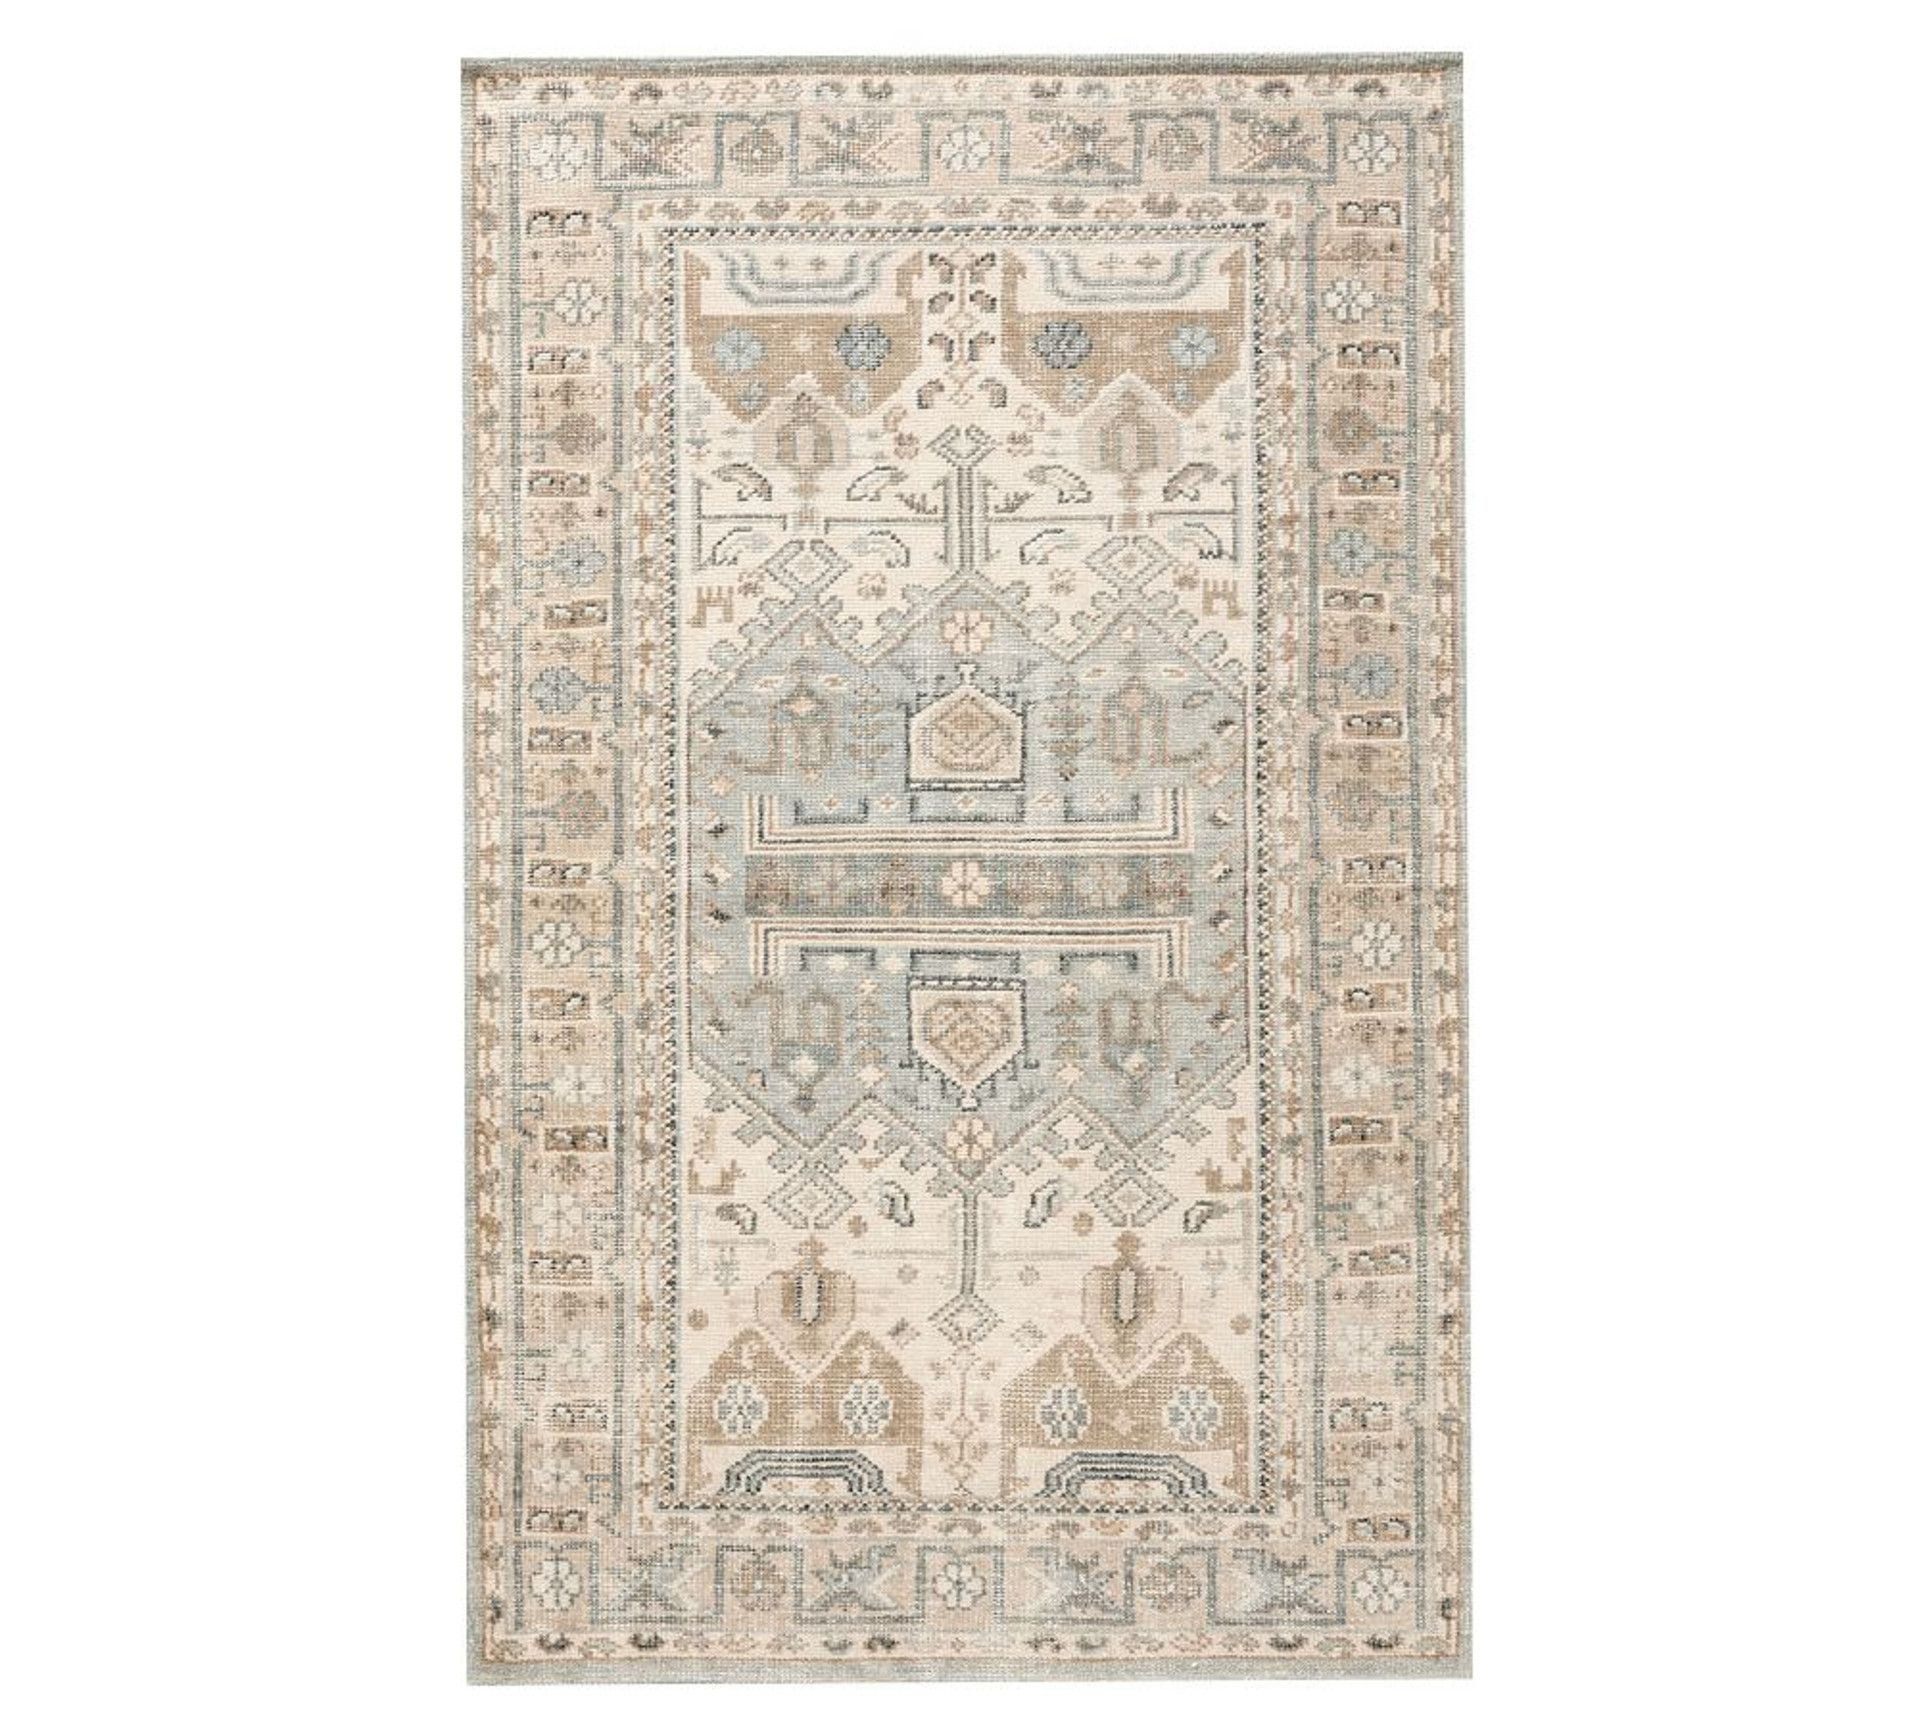 Pb Rug In 2020 Hand Knotted Rugs Tufted Rug Persian Style Rug